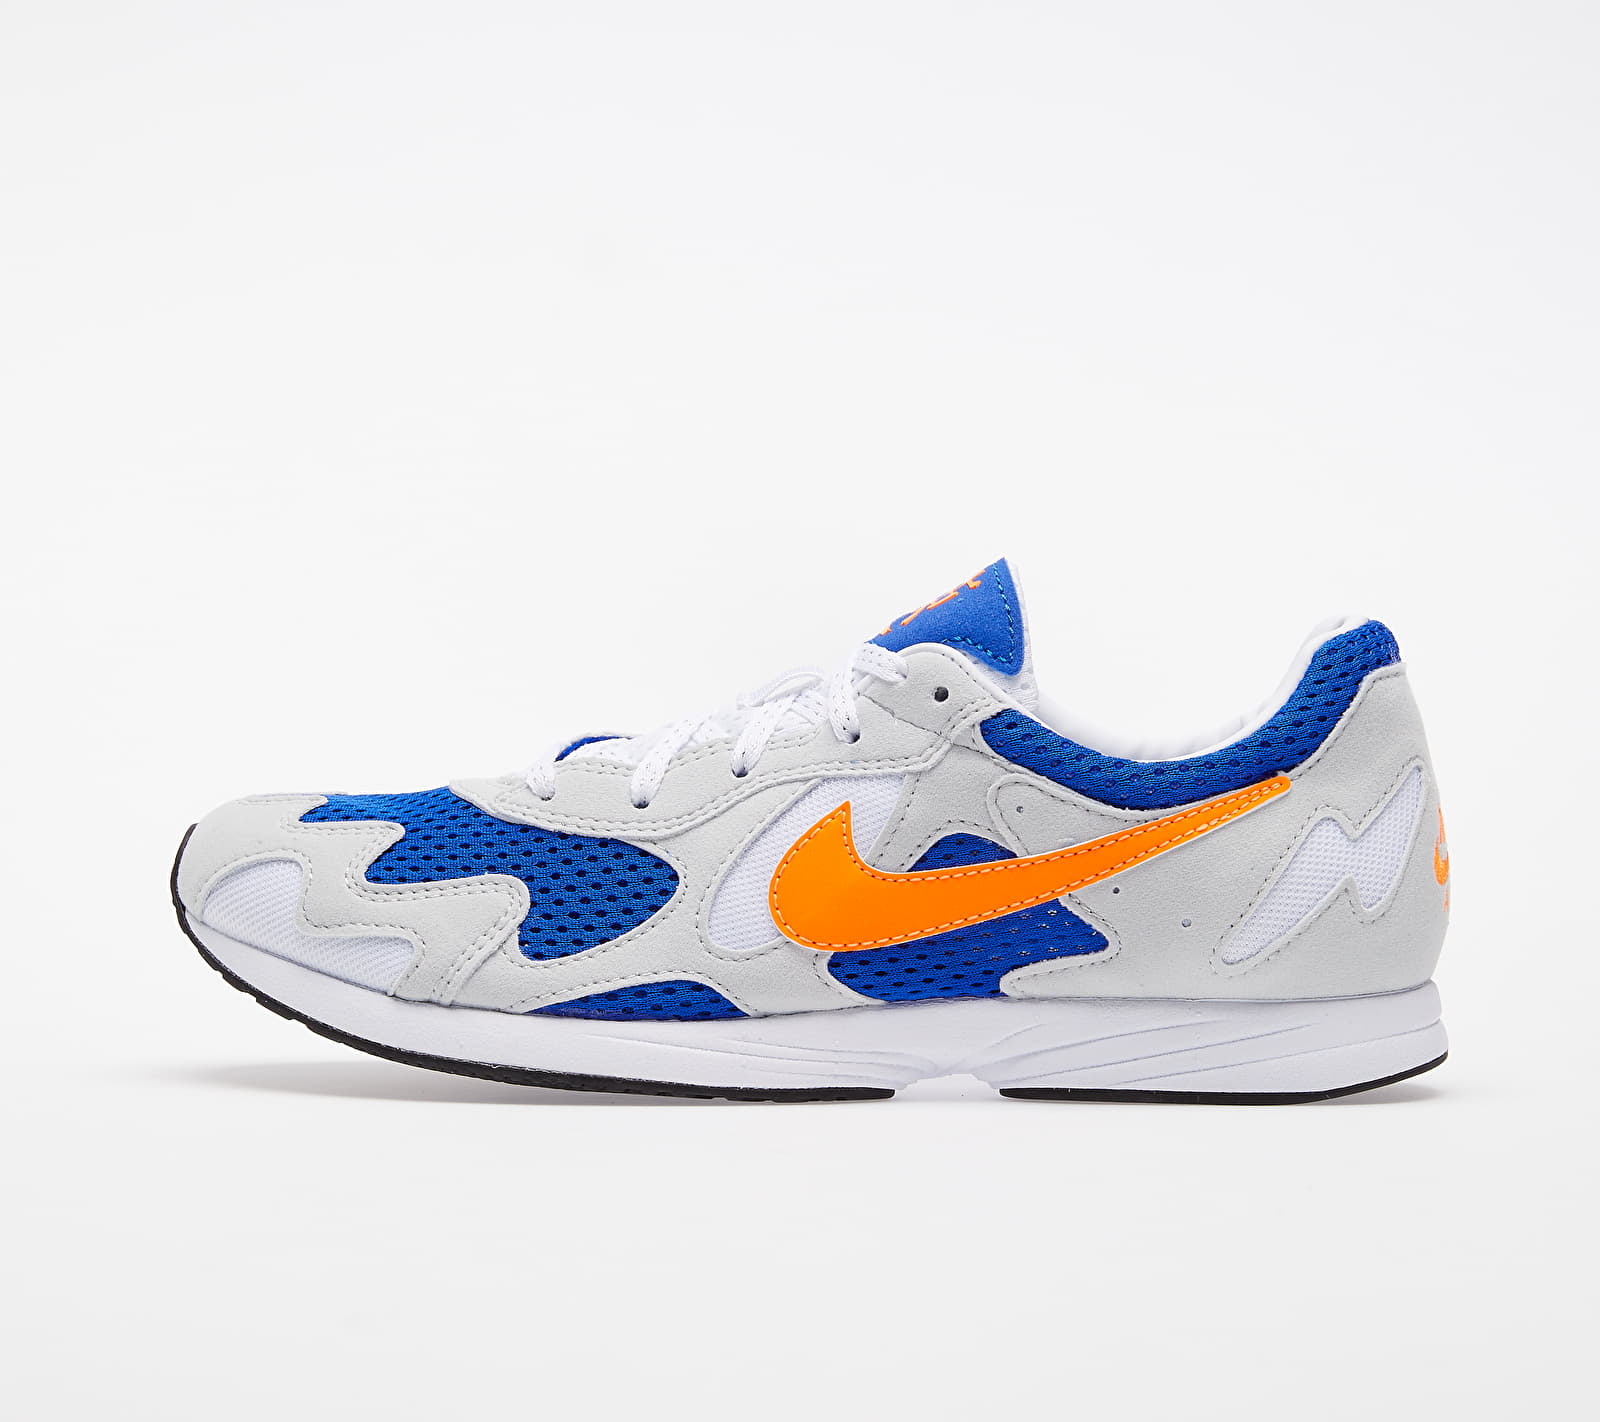 Nike Air Streak Lite White/ Total Orange-Racer Blue-Black EUR 44.5